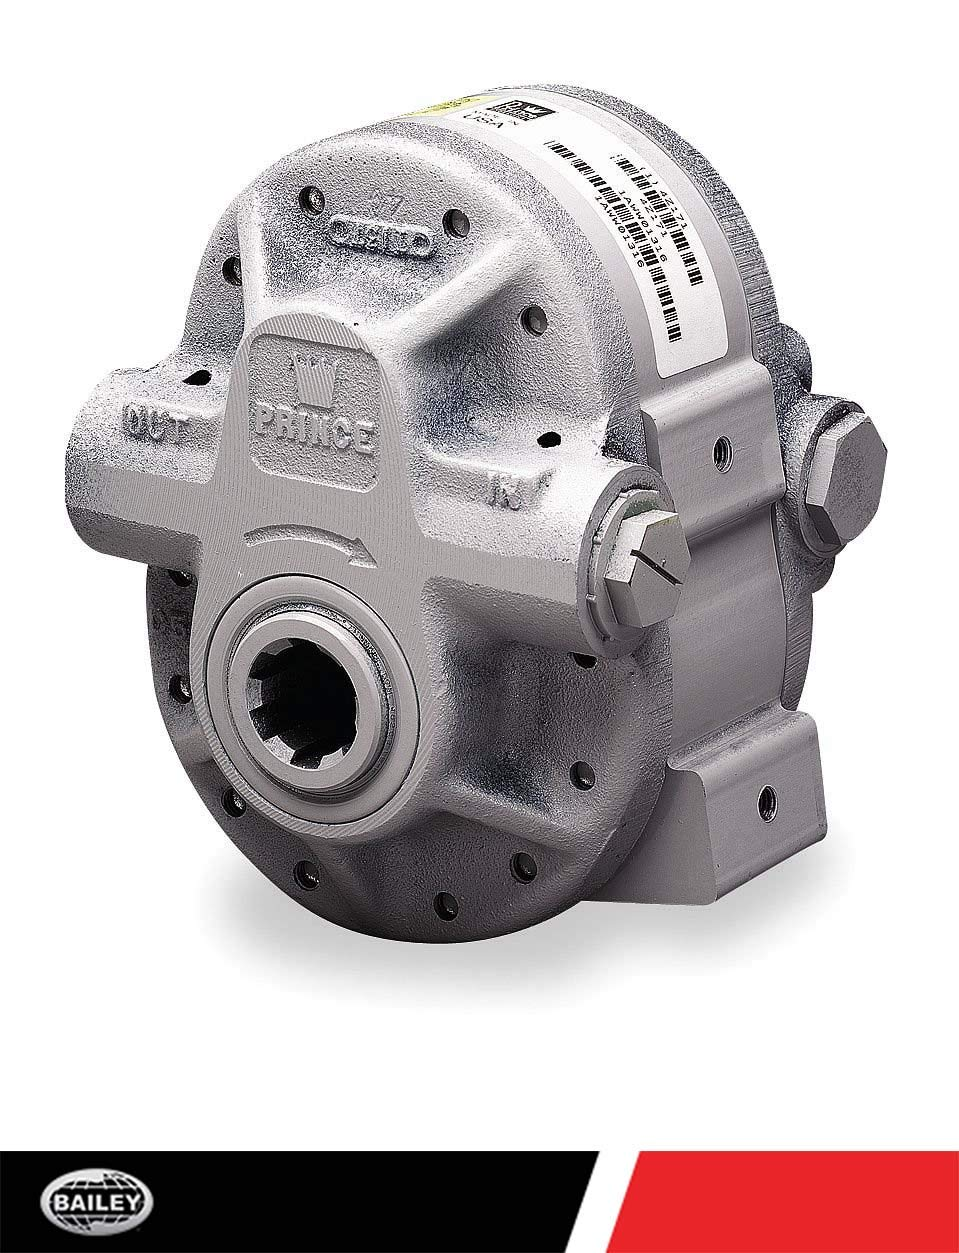 6 tooth Drive Shaft SAE 12 Outlet Port Aluminum Center Housing: 5.7 CID 540 RPM 1 3//8/'/' dia SAE 16 Inlet Ports 251563 11.4 Prince PTO Gear Pumps 2250 PSI 18 HP